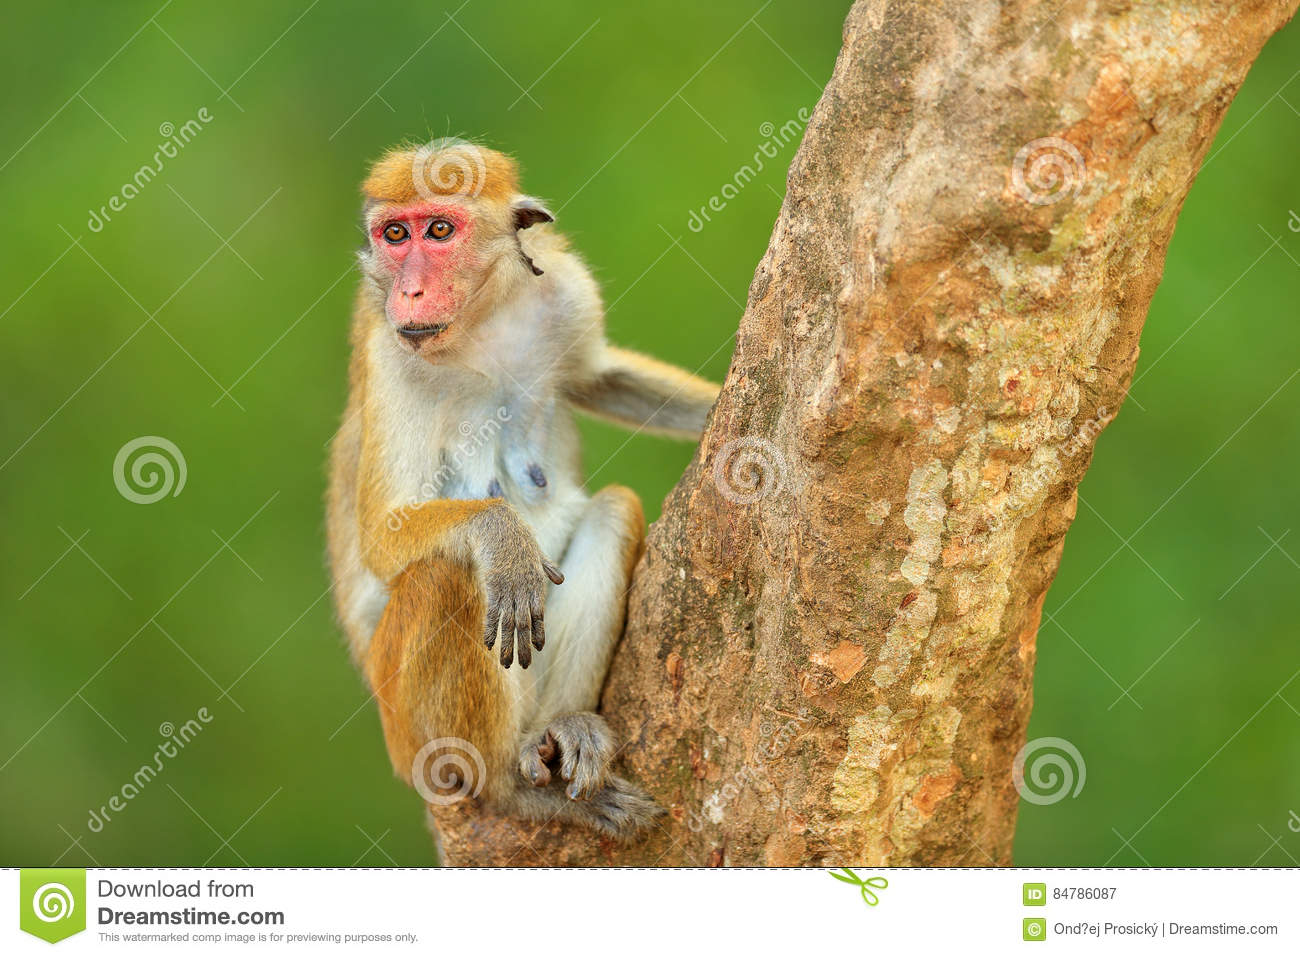 an introduction to the nature of the macaque monkeys The macaques constitute a genus (macaca) of old world monkeys of the  subfamily  they can also survive in completely natural settings with no humans  present the ecological and  primate anatomy: an introduction academic  press p.